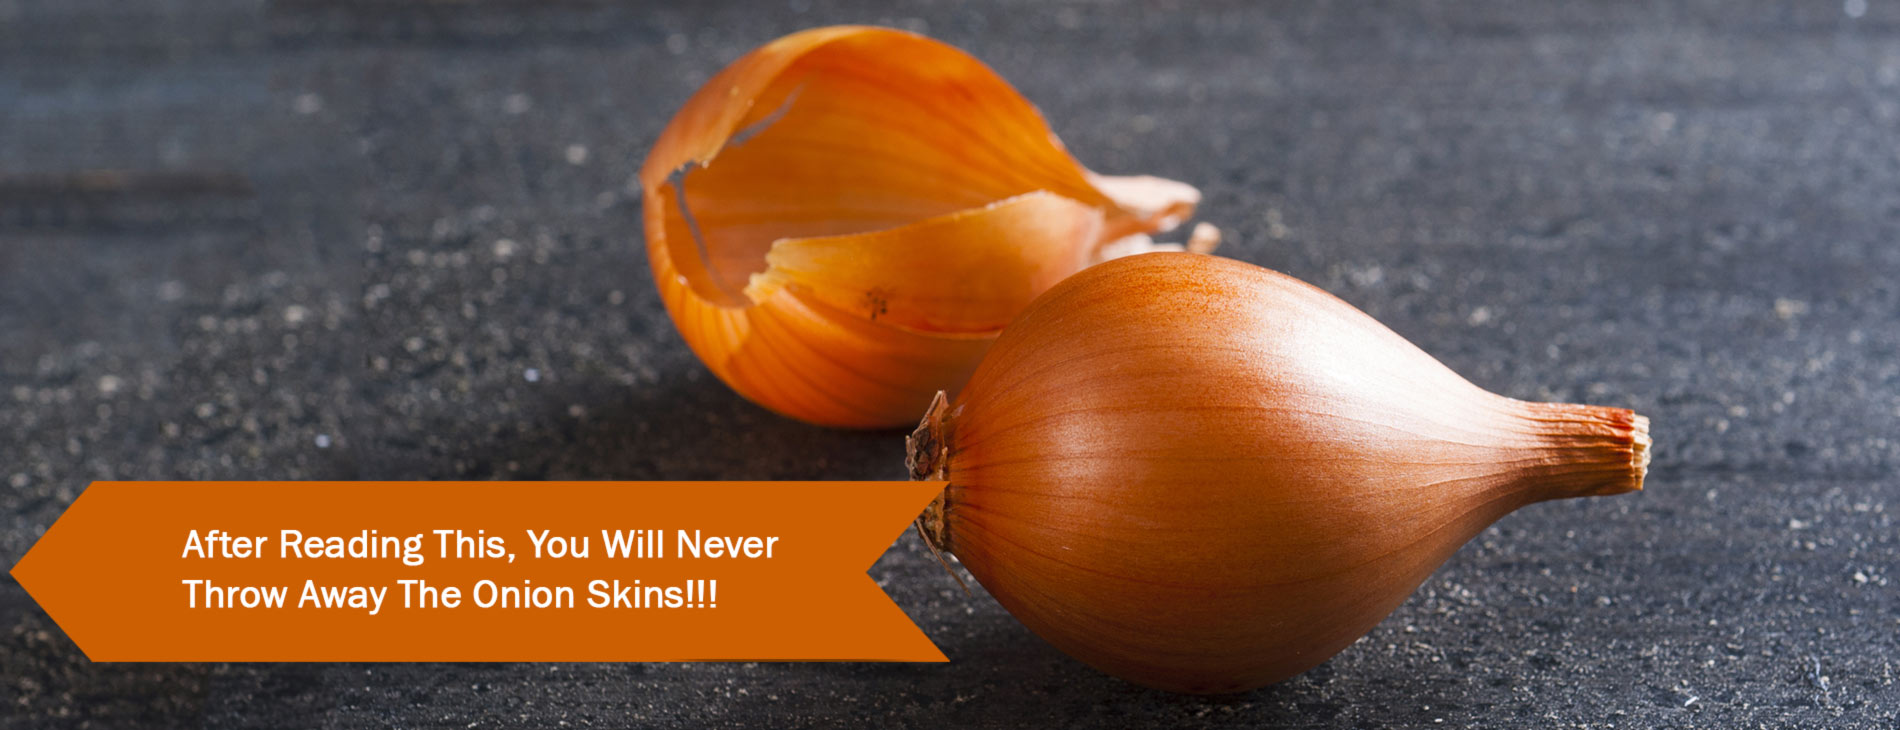 After-Reading-This,-You-Will-Never-Throw-Away-The-Onion-Skins!!!